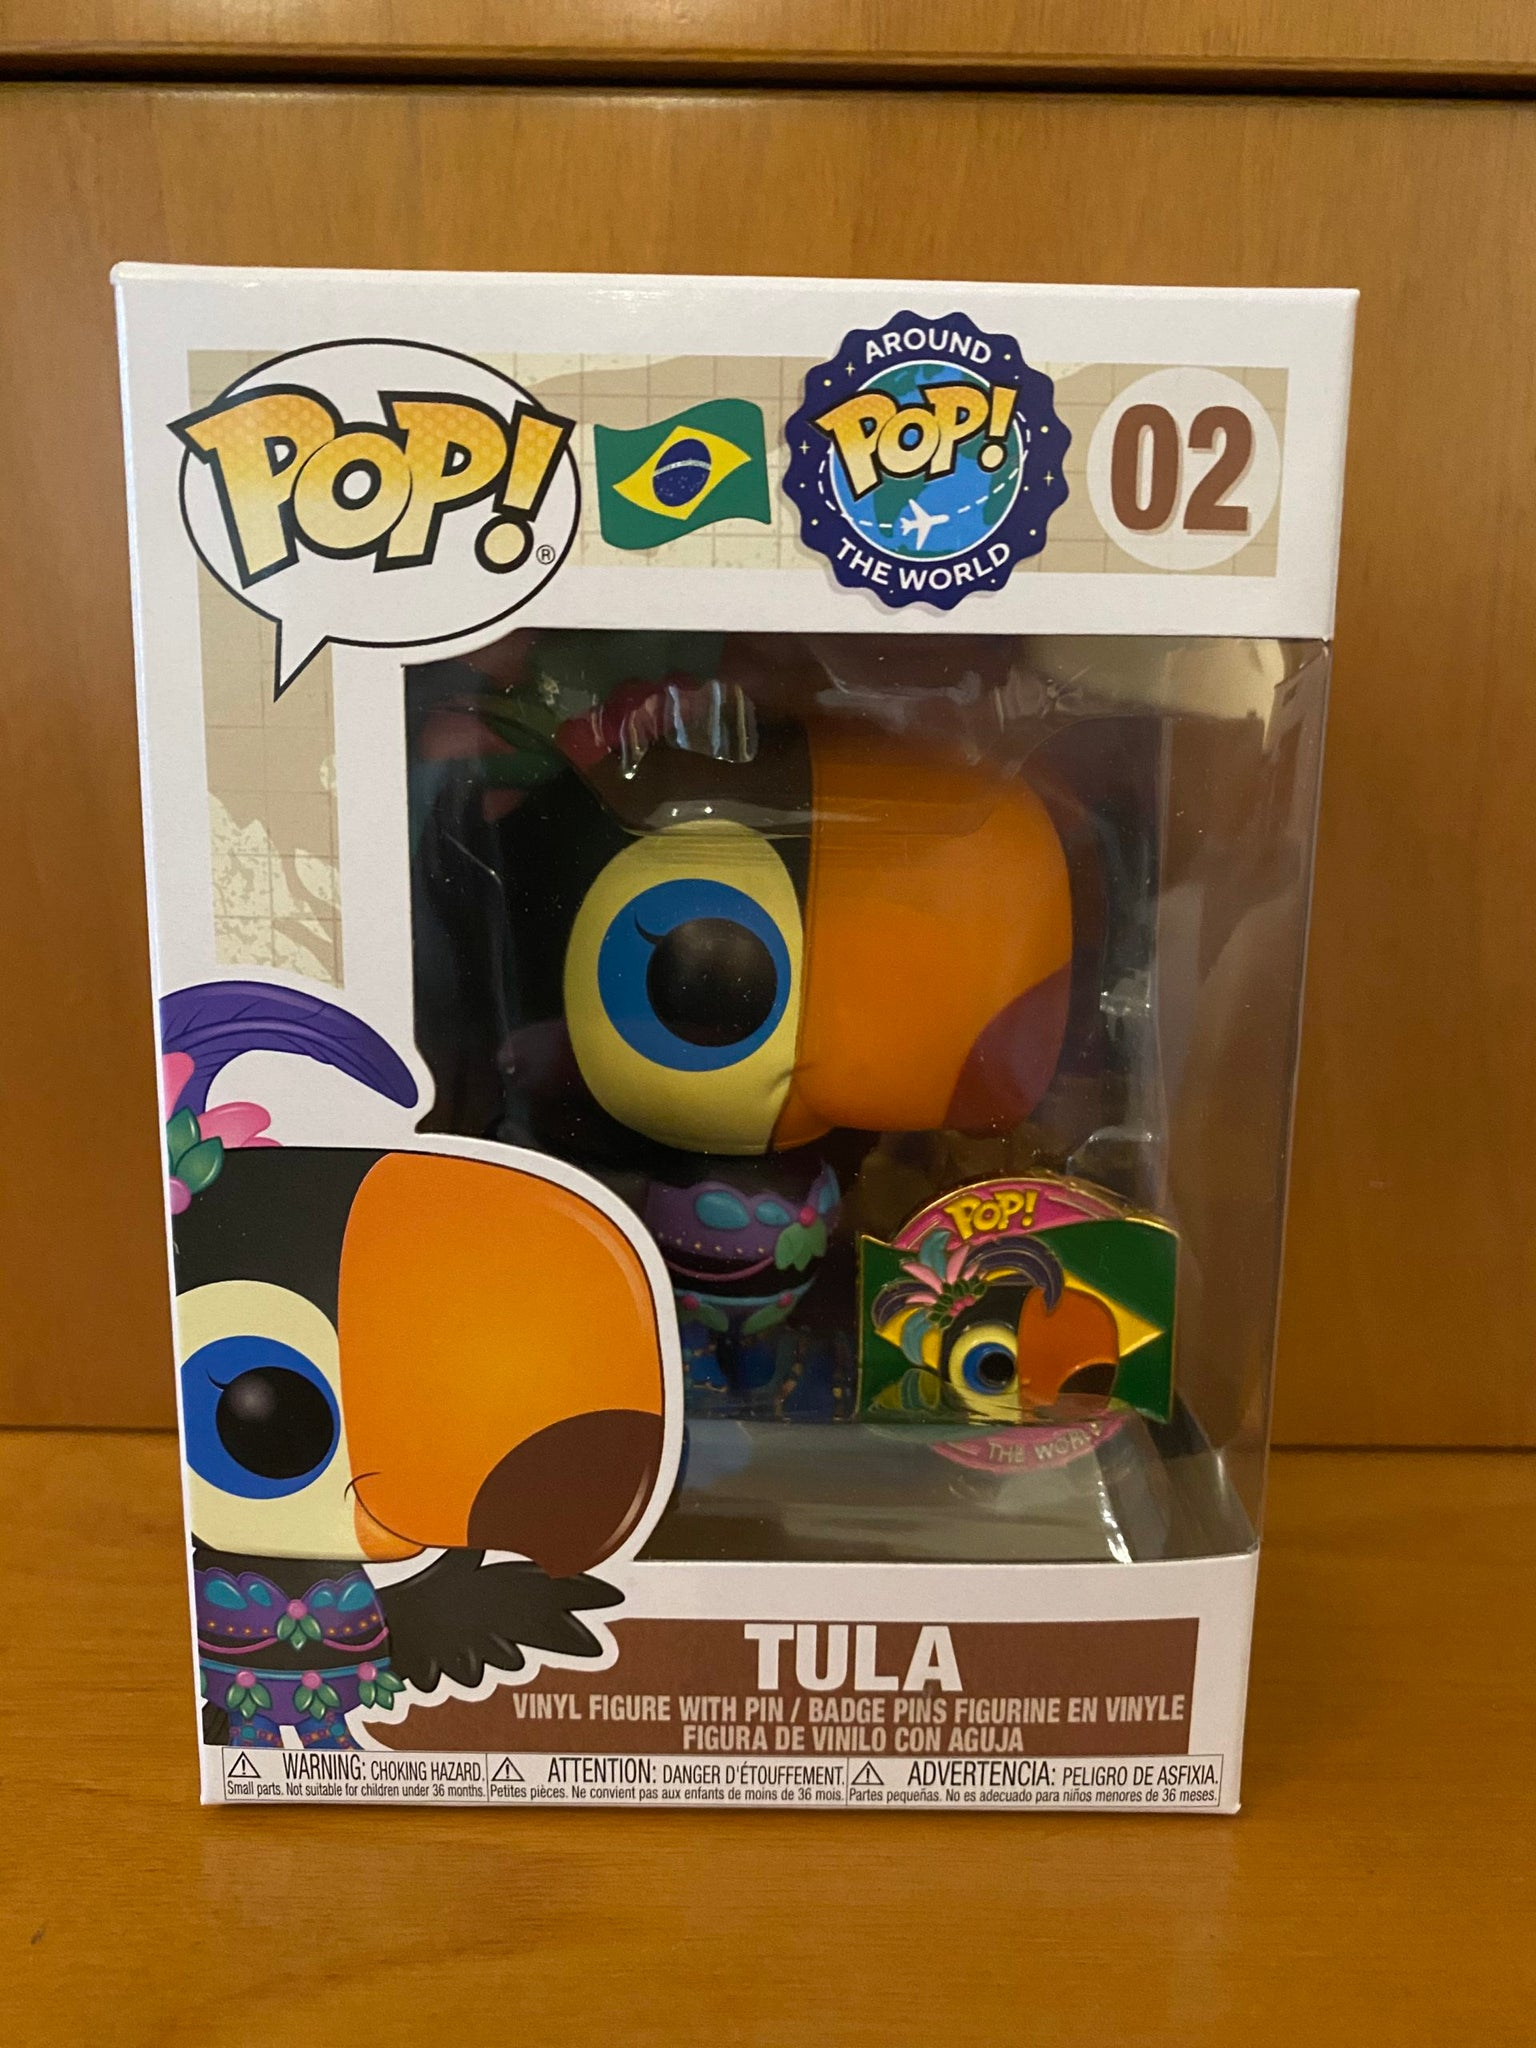 AROUND THE WORLD - TULA #02 FUNKO POP! VINYL - HDTOYS Shop